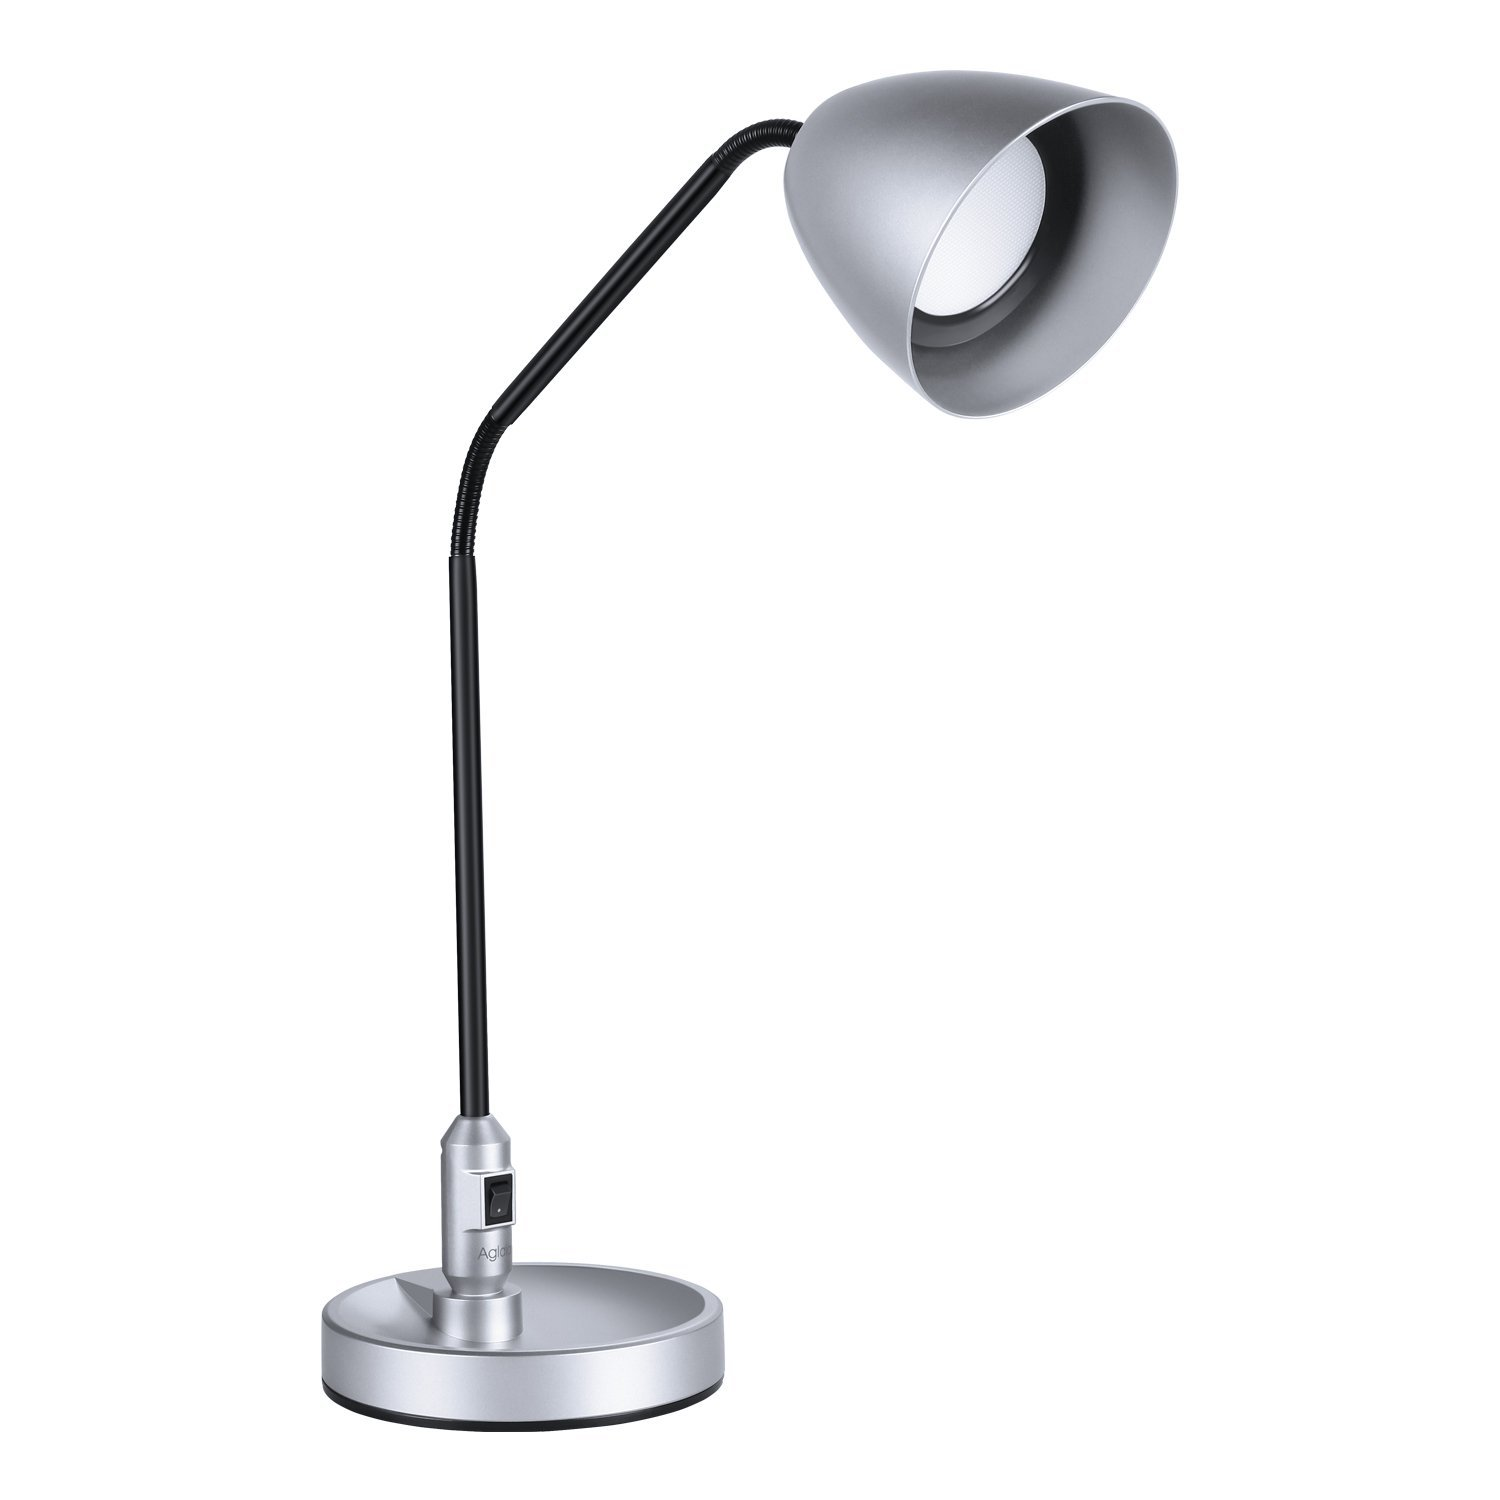 Roll over image to zoom in LED Desk Lamp, Aglaia, 2 in 1 Adjustable Table lamp, Clamp Lamp, 7W, SMD-LED with Flexible Neck, Metal Base for Studio, Office